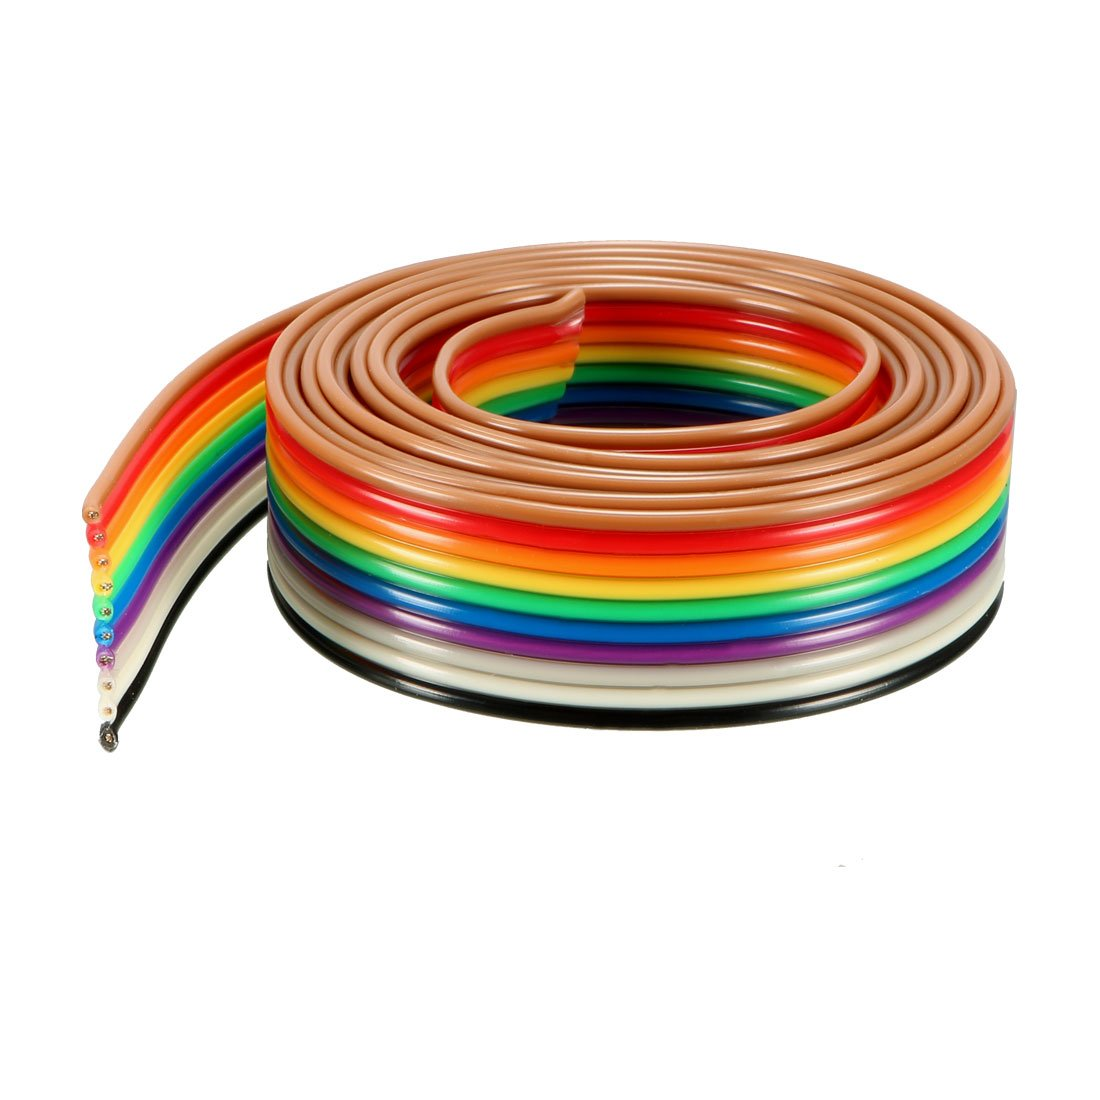 Uxcell Ribbon Cable 10p Jumper Wire 127mm Pitch 1m Long Wiring Diagram A18050400ux0318